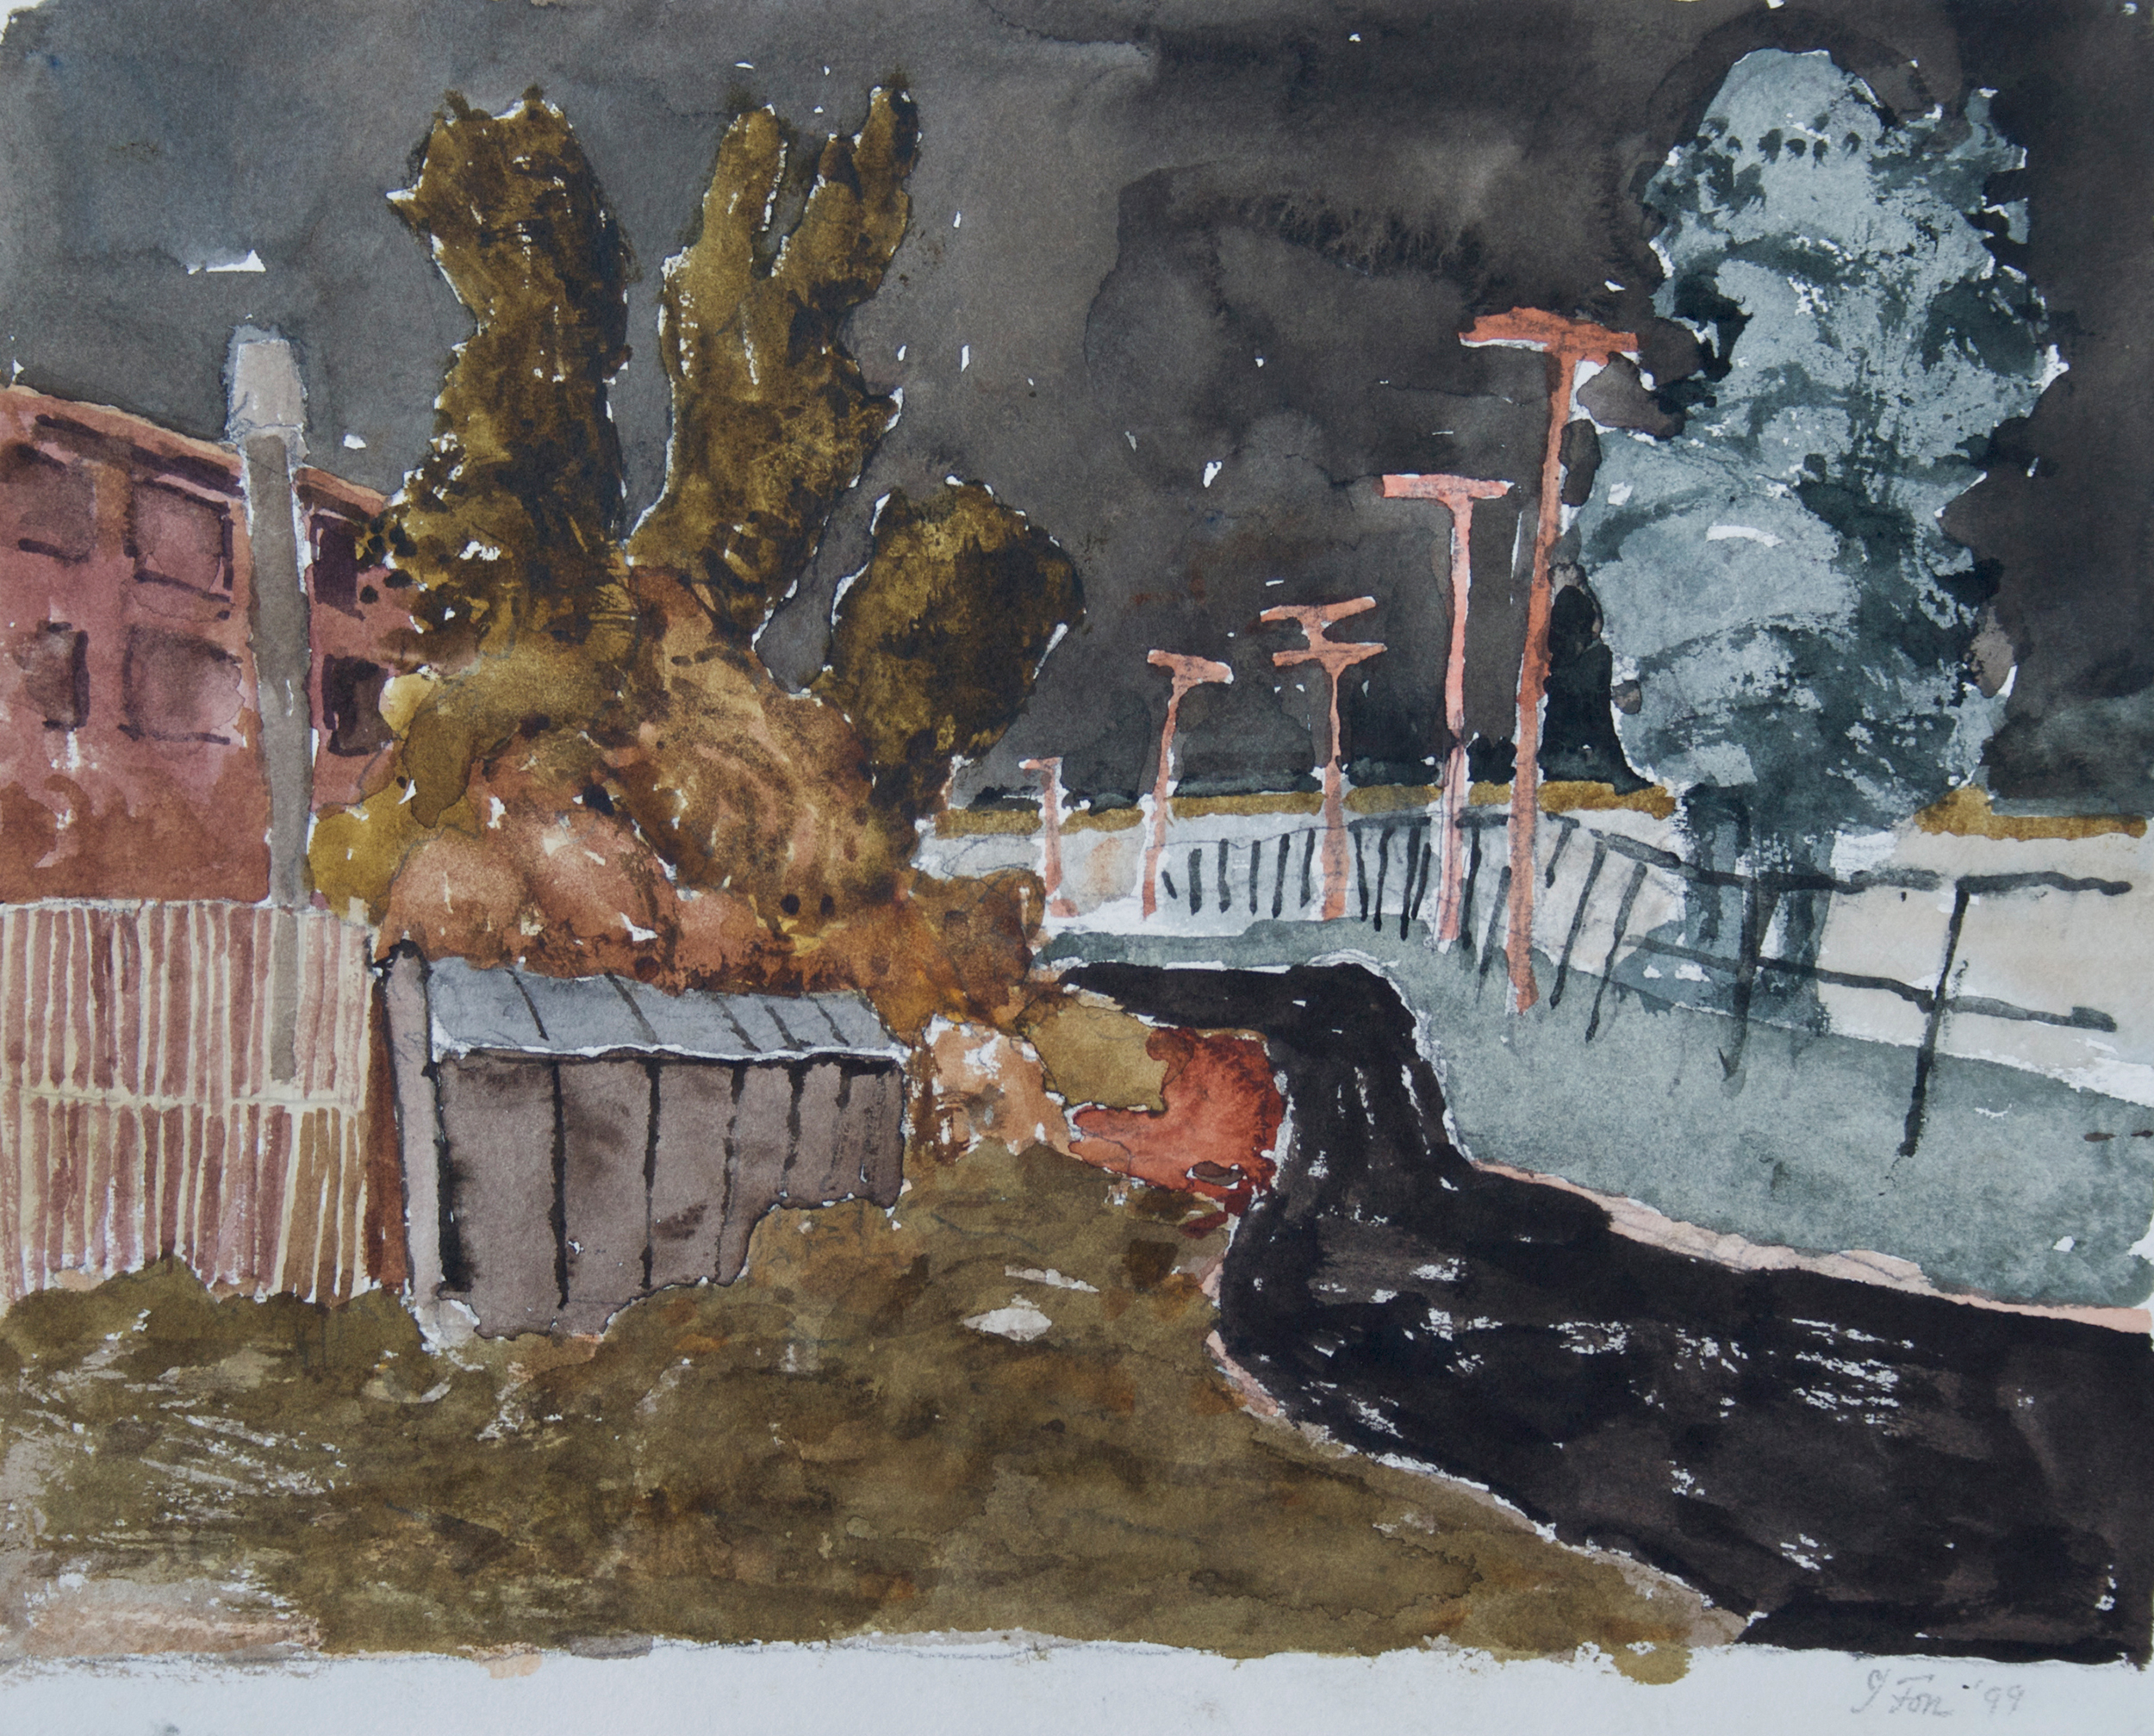 1999_St_Henri_with_Path_Montreal_watercolour_on_paper_11x14in_28x36cm_WPF161.jpg